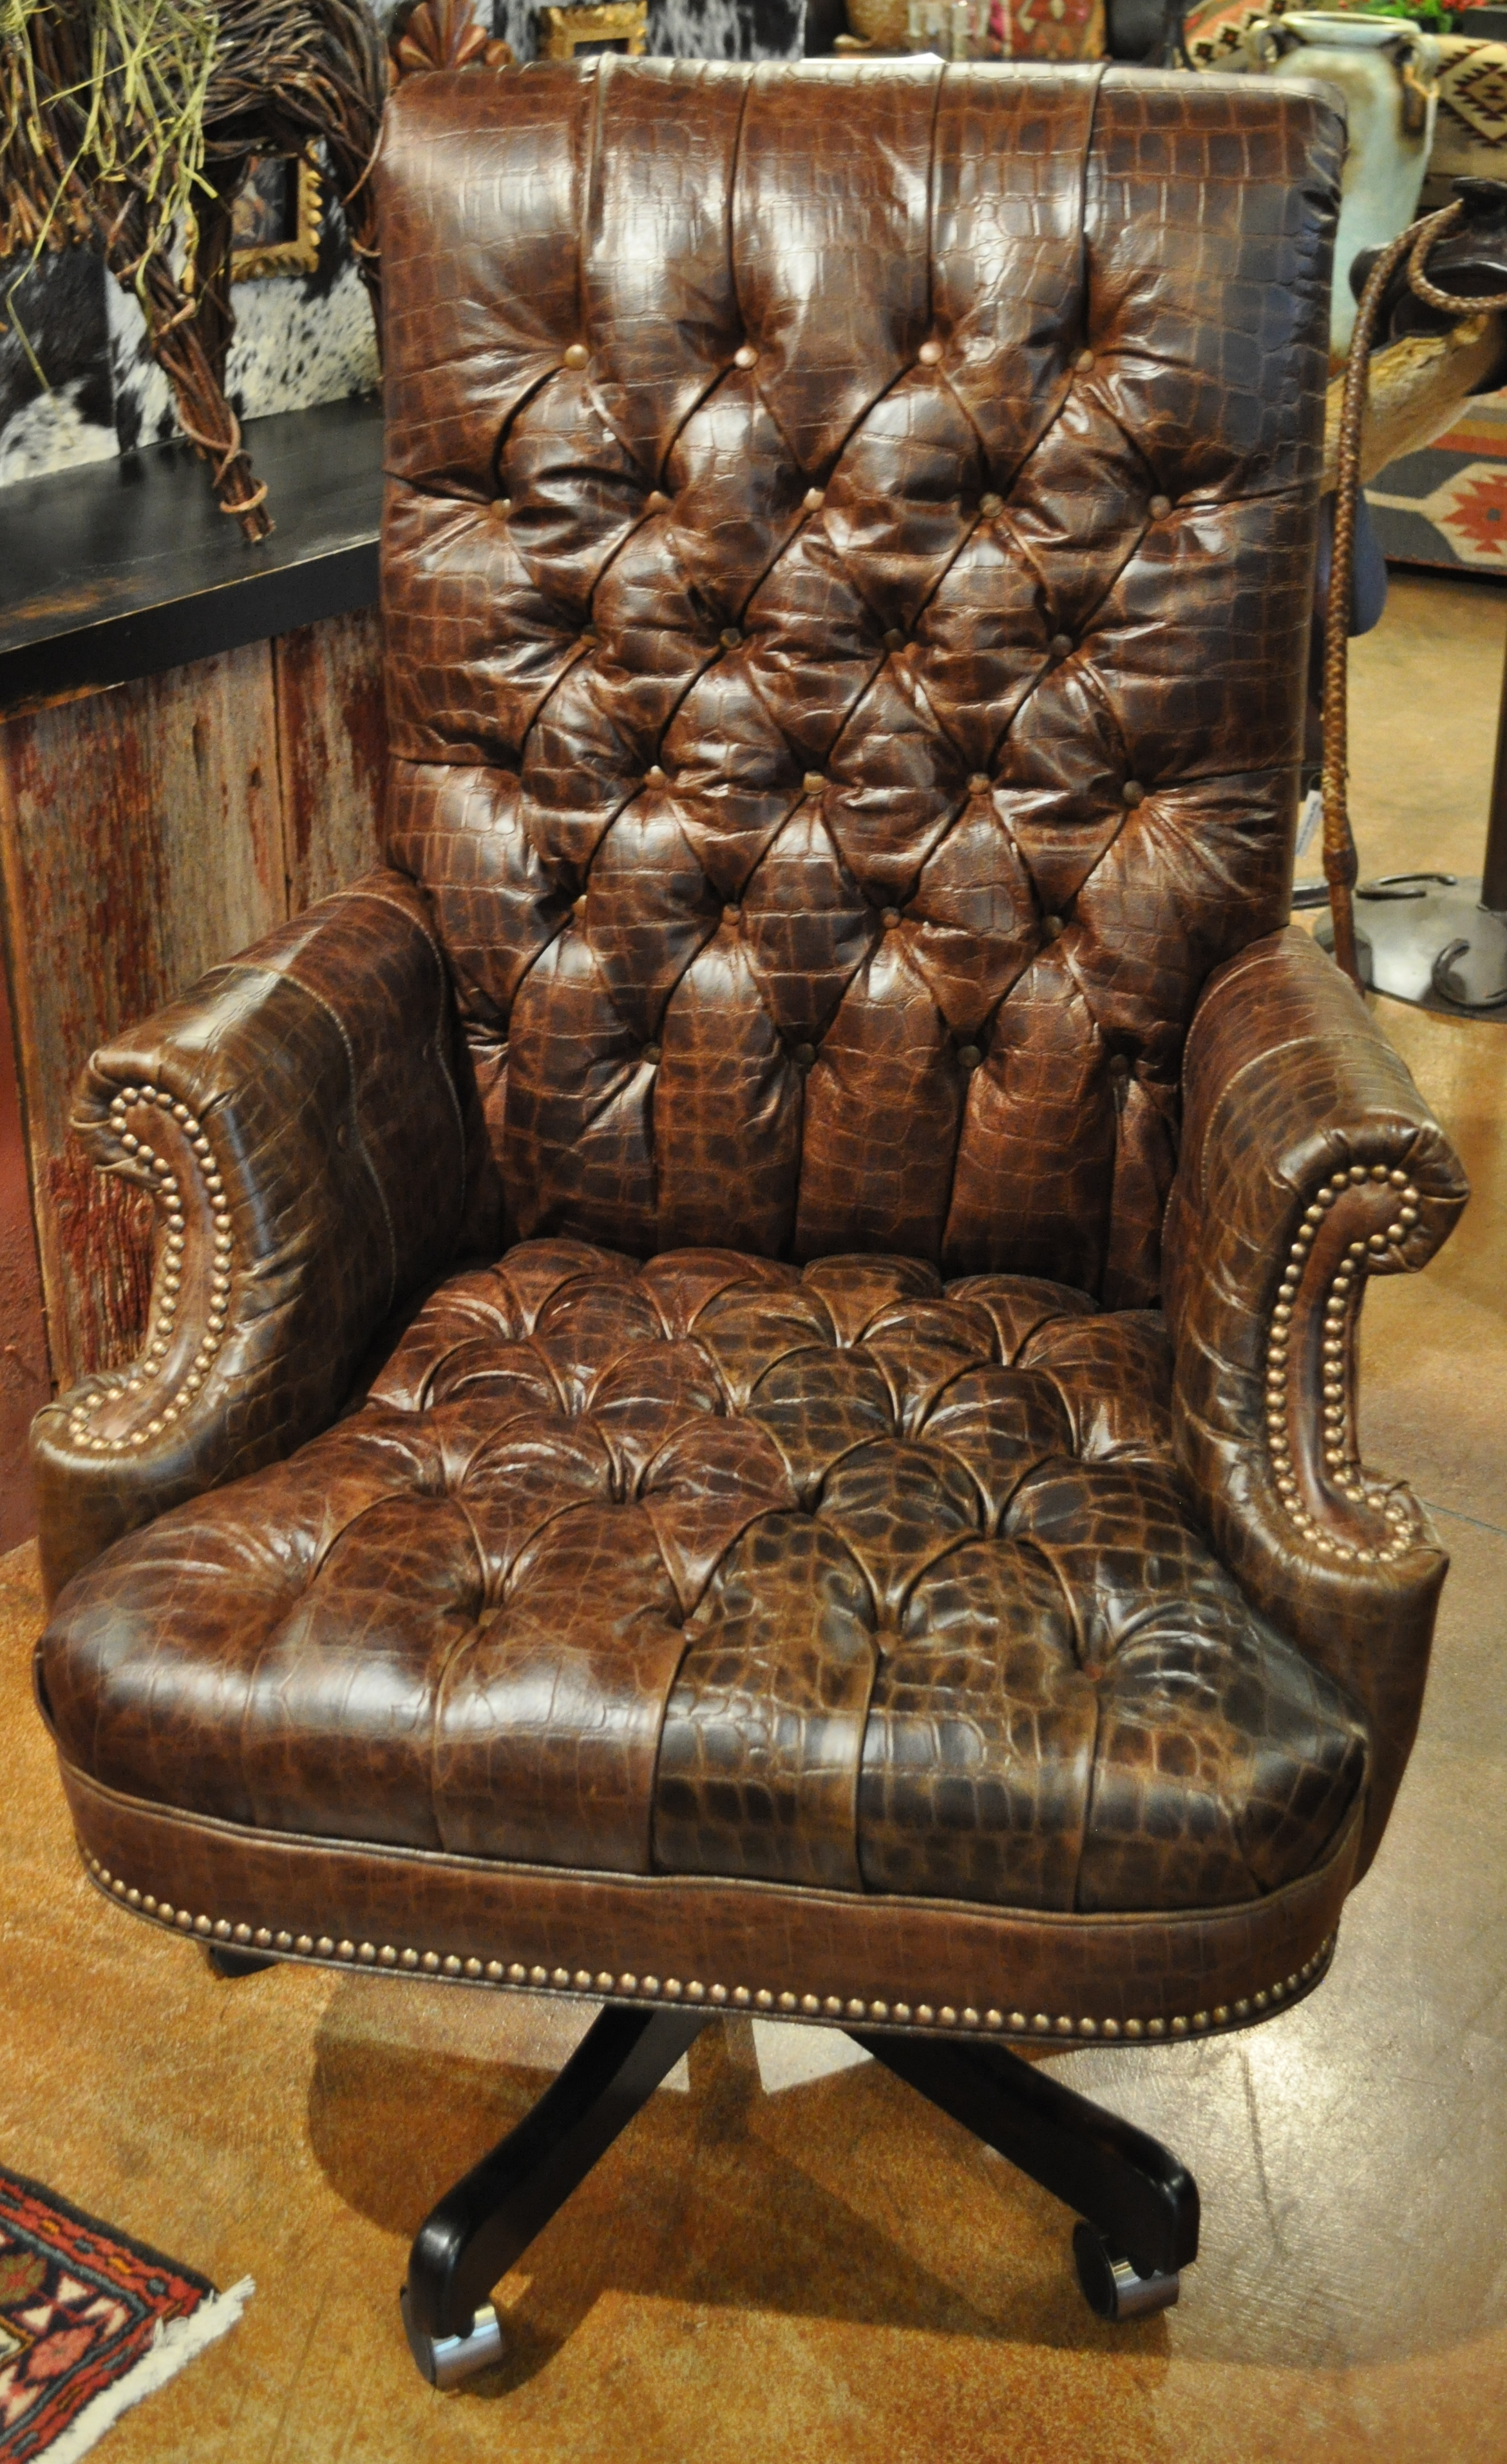 Hon Executive Office Chairs Inside Newest Leather Office Chair In Brown Tufted Embossed Croc (View 12 of 20)